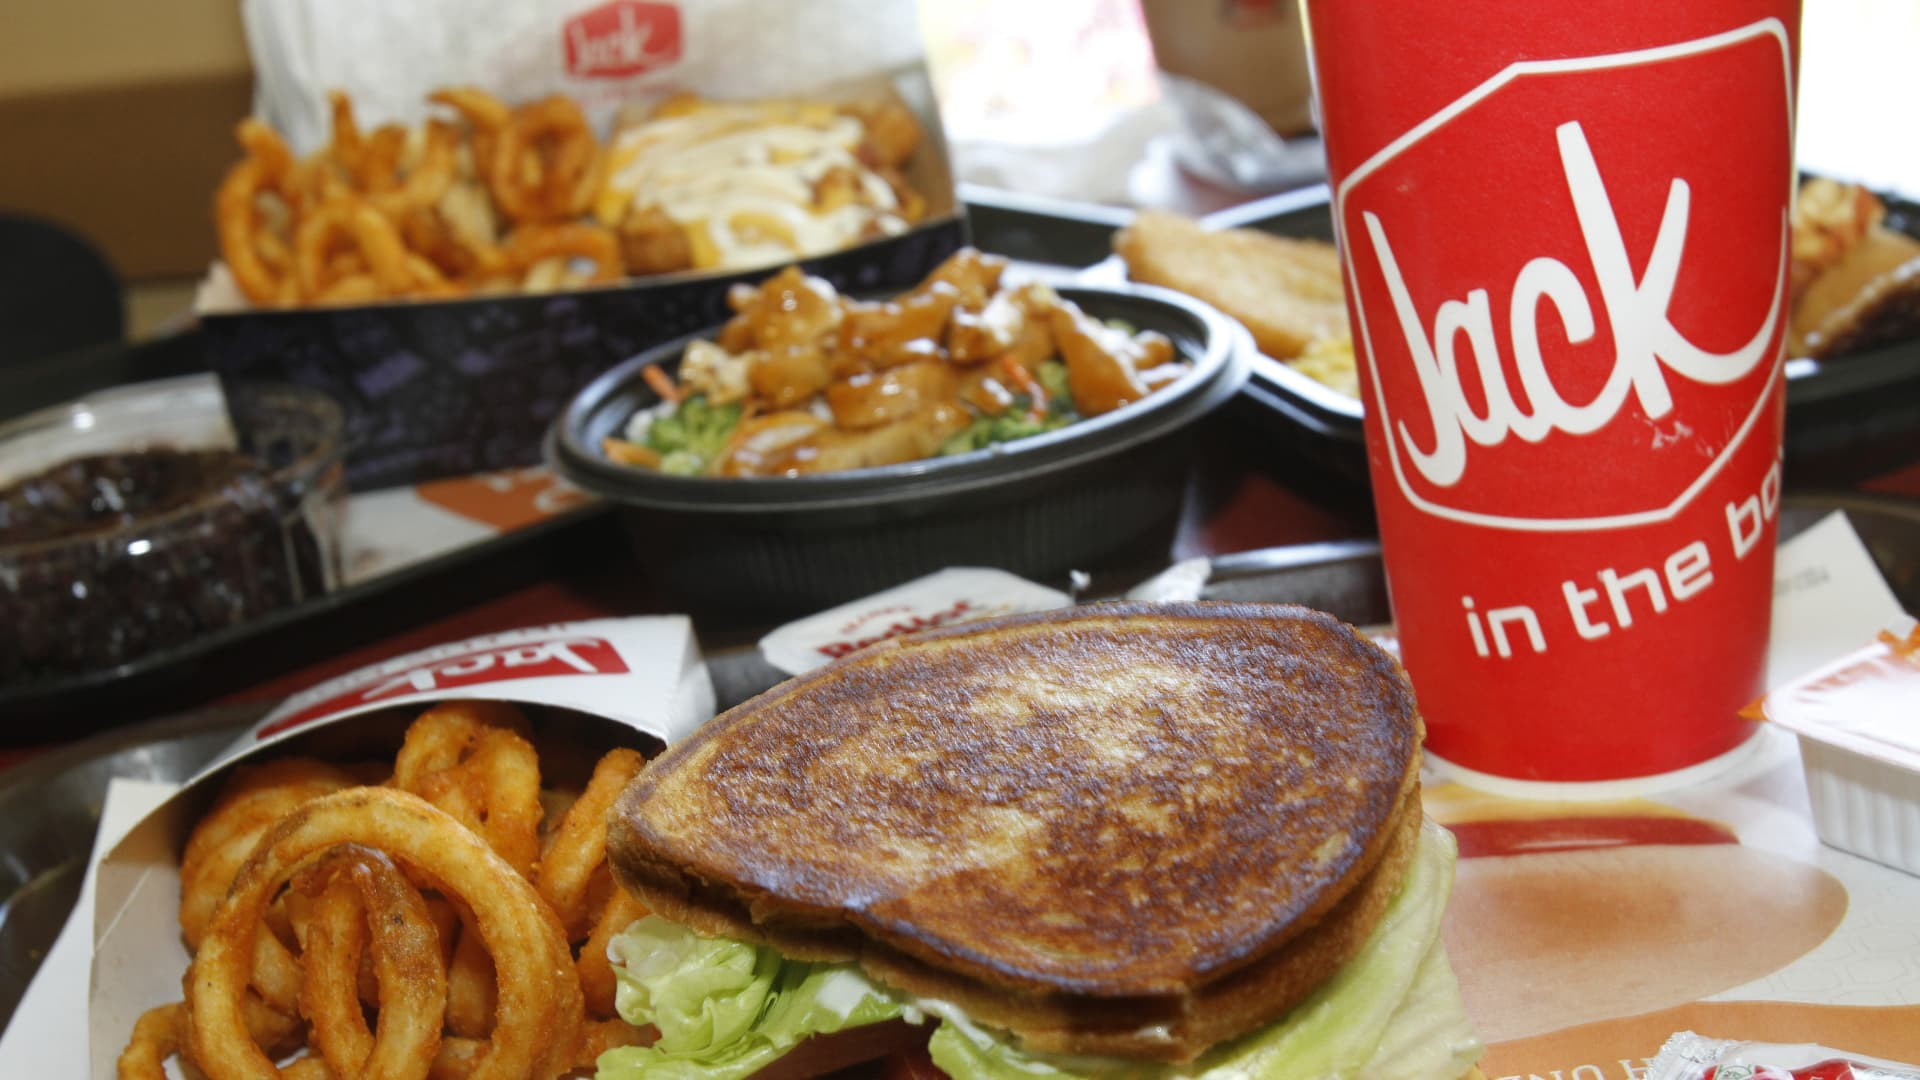 A selection of food that is on the menu at the Jack in the Box on Campus Drive in Irvine, Calif.